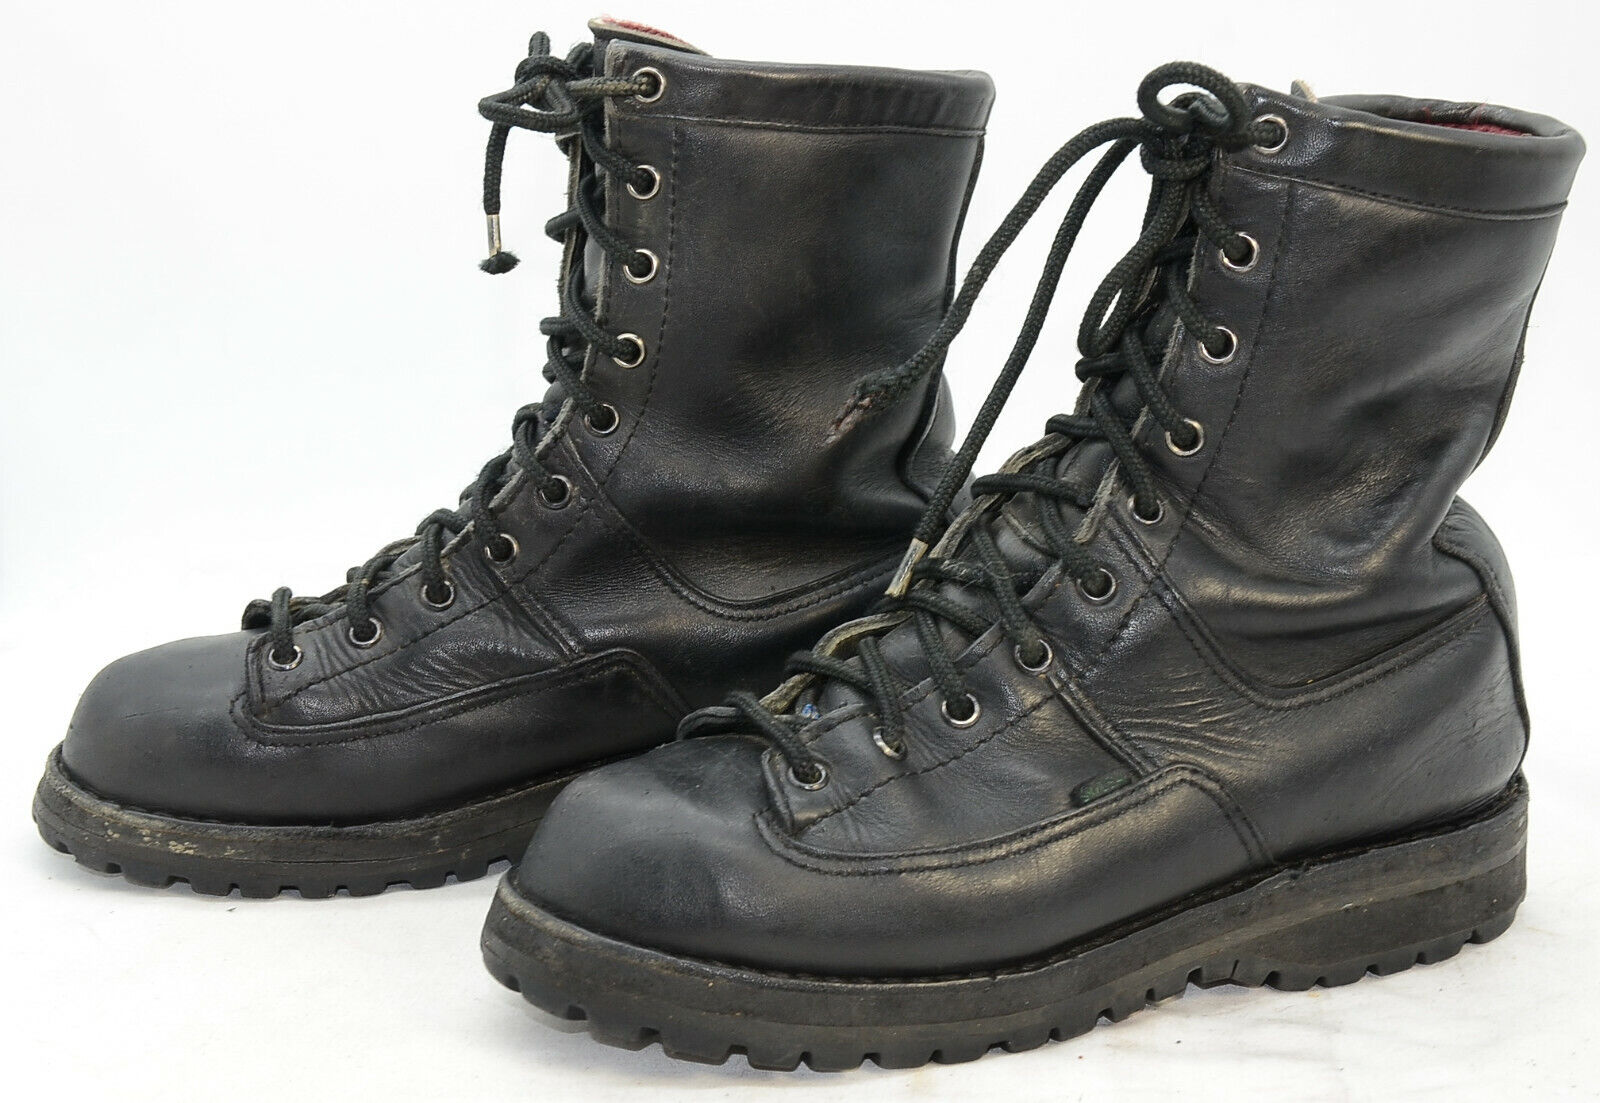 a65d491509b DANNER Recon 8 Insulated 200G Mens Sz 6.5 EE Leather Uniform Boots ...